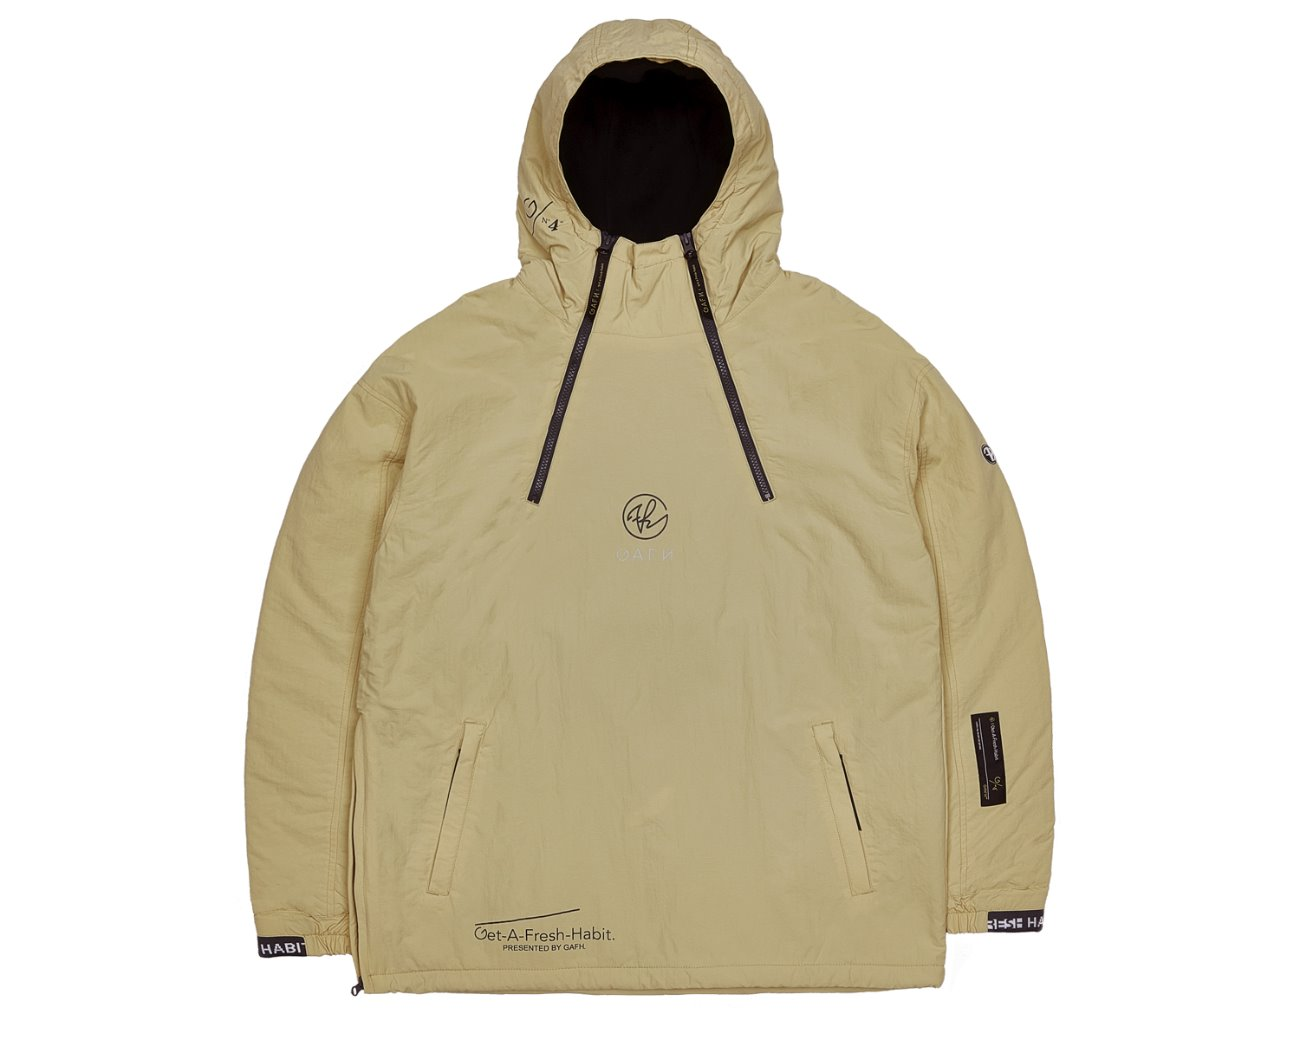 DOUBLE ZIP UP PULLOVER WHEAT / GAFH